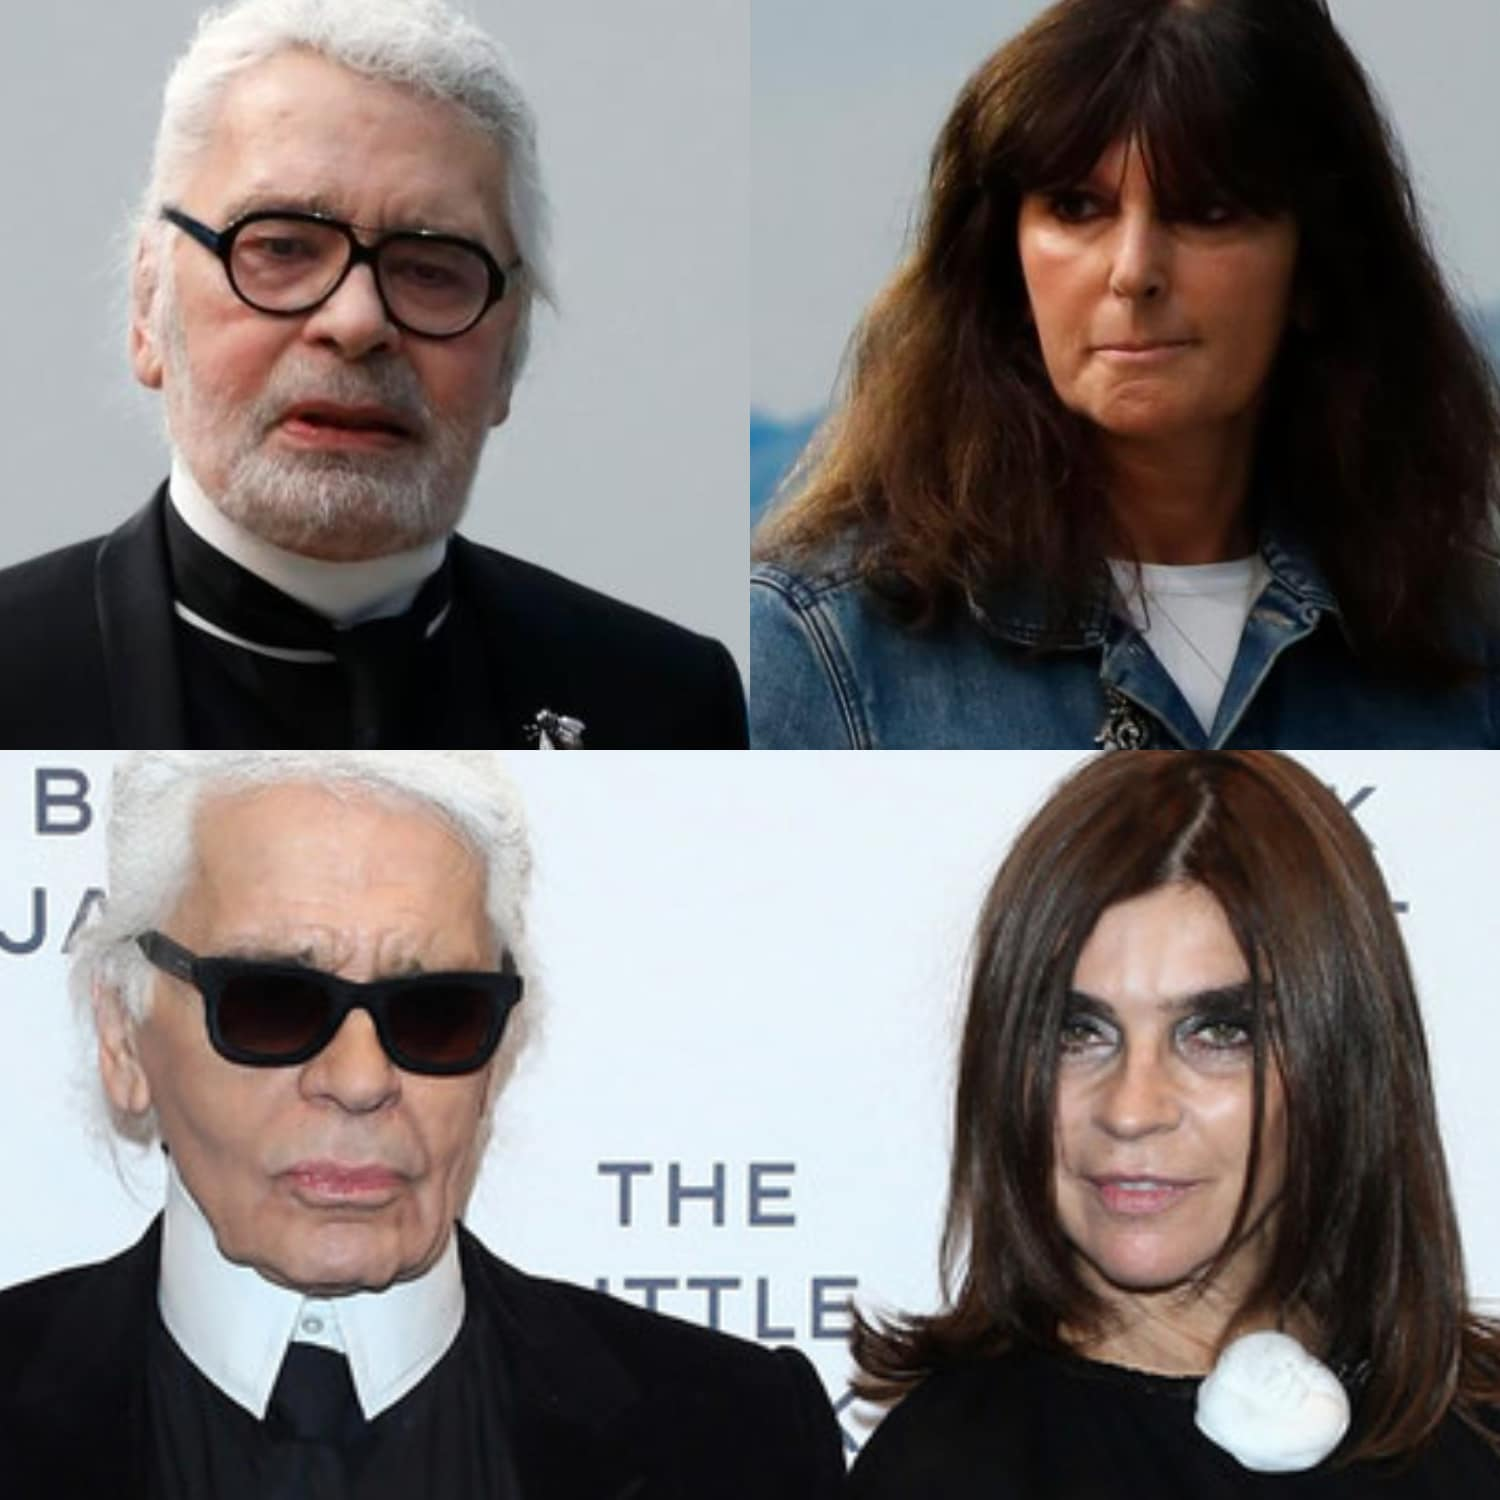 Karl Lagerfeld Heritage to Virginie Viard (Artistic Director at Chanel) and Carine Roitfeld (Style Adviser at Karl lagerfeld)